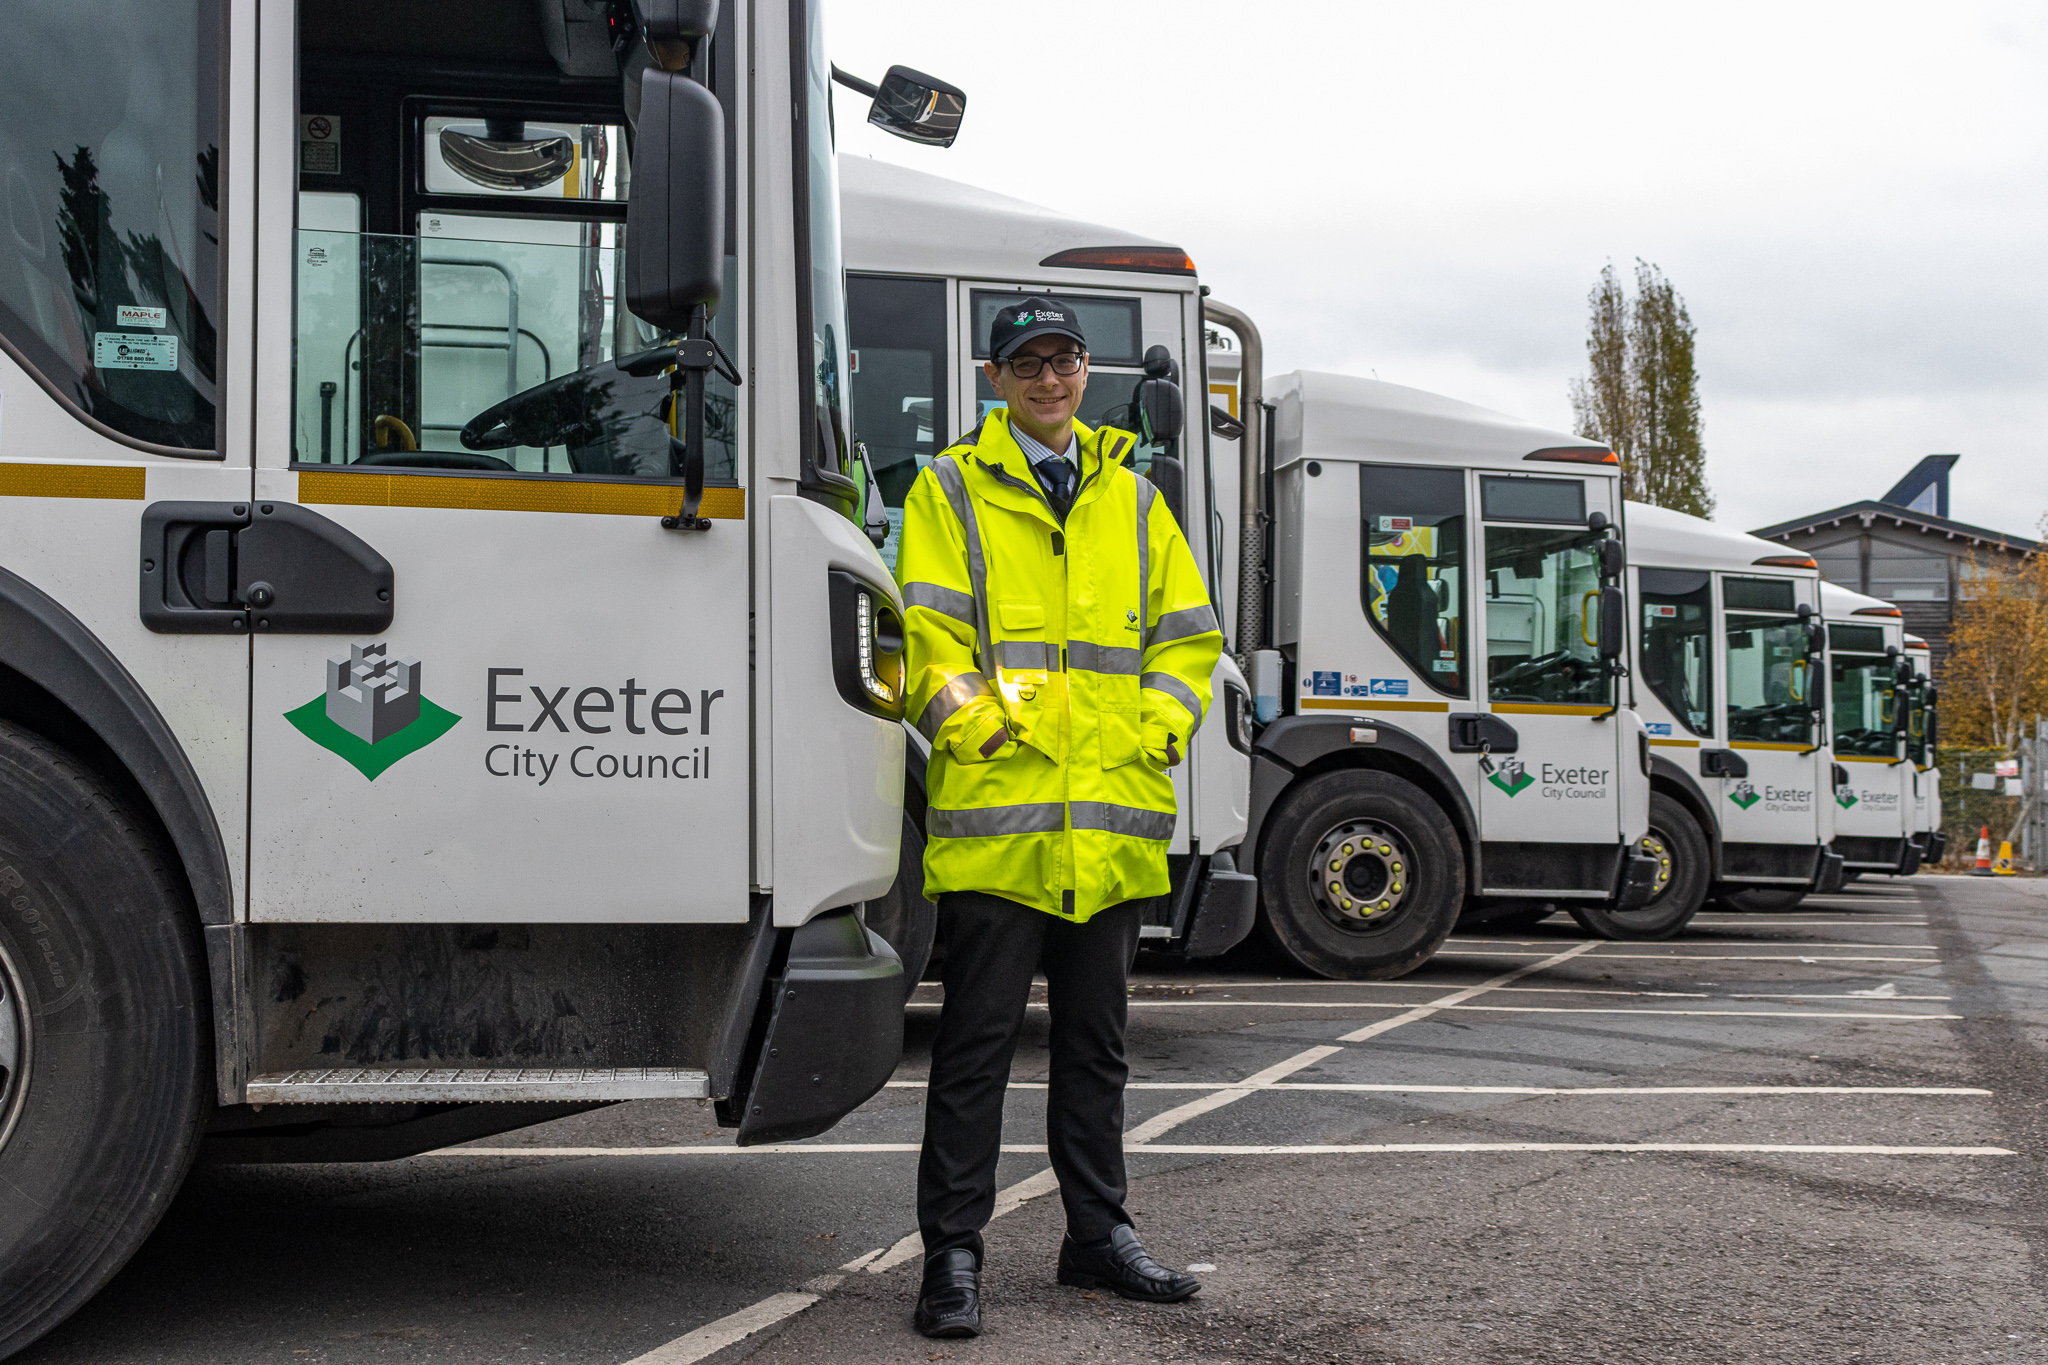 Exeter City Council Upgrades Fleet With Latest Vehicles And Technology